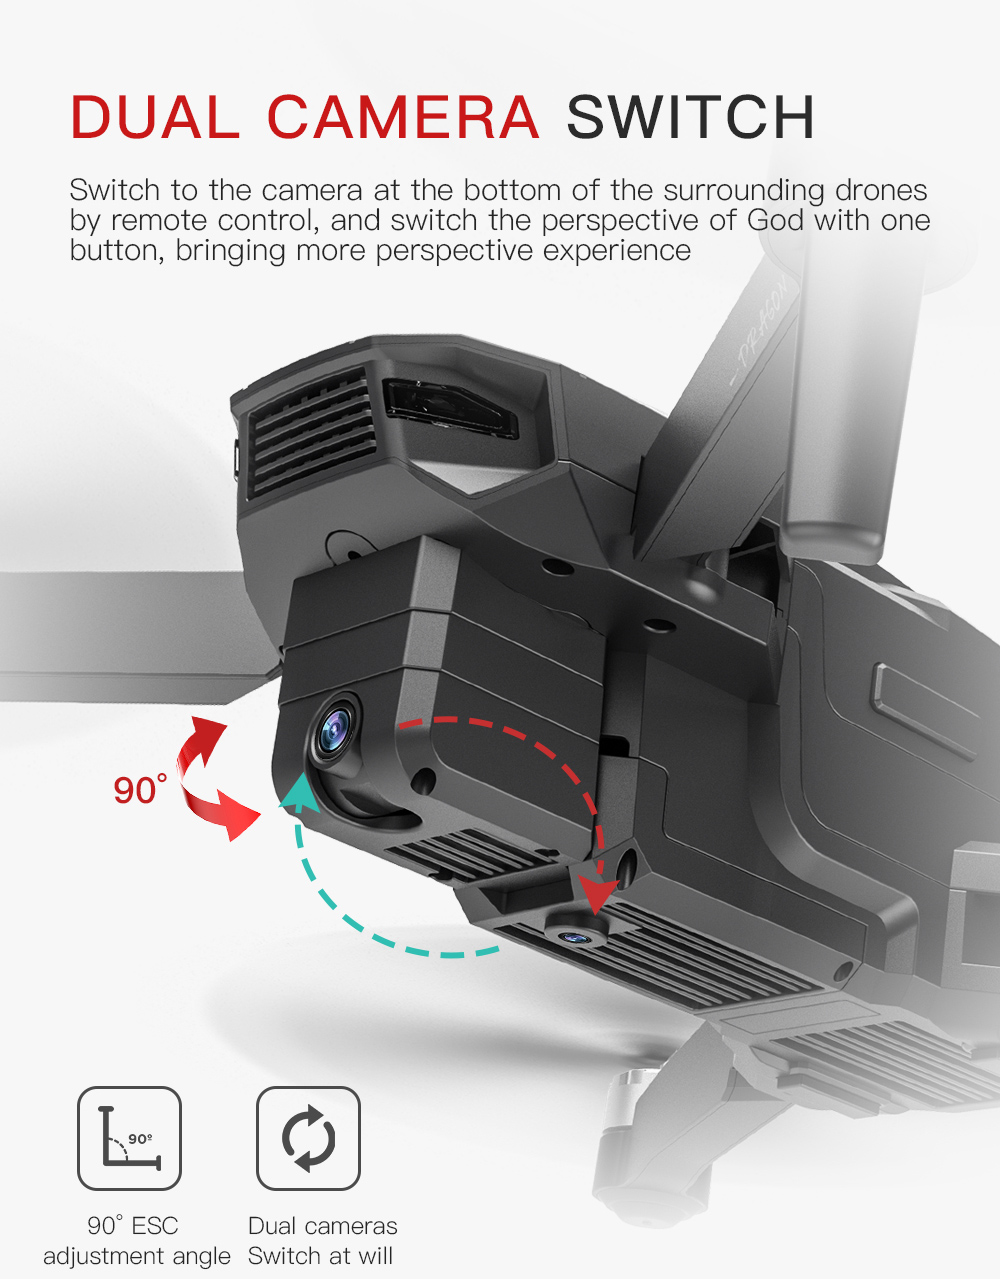 KF107 GPS 5G WiFi 1.2KM FPV with 4K Servo Camera Optical Flow Positioning Brushless Foldable RC Quadcopter Drone RTF - Black One Battery